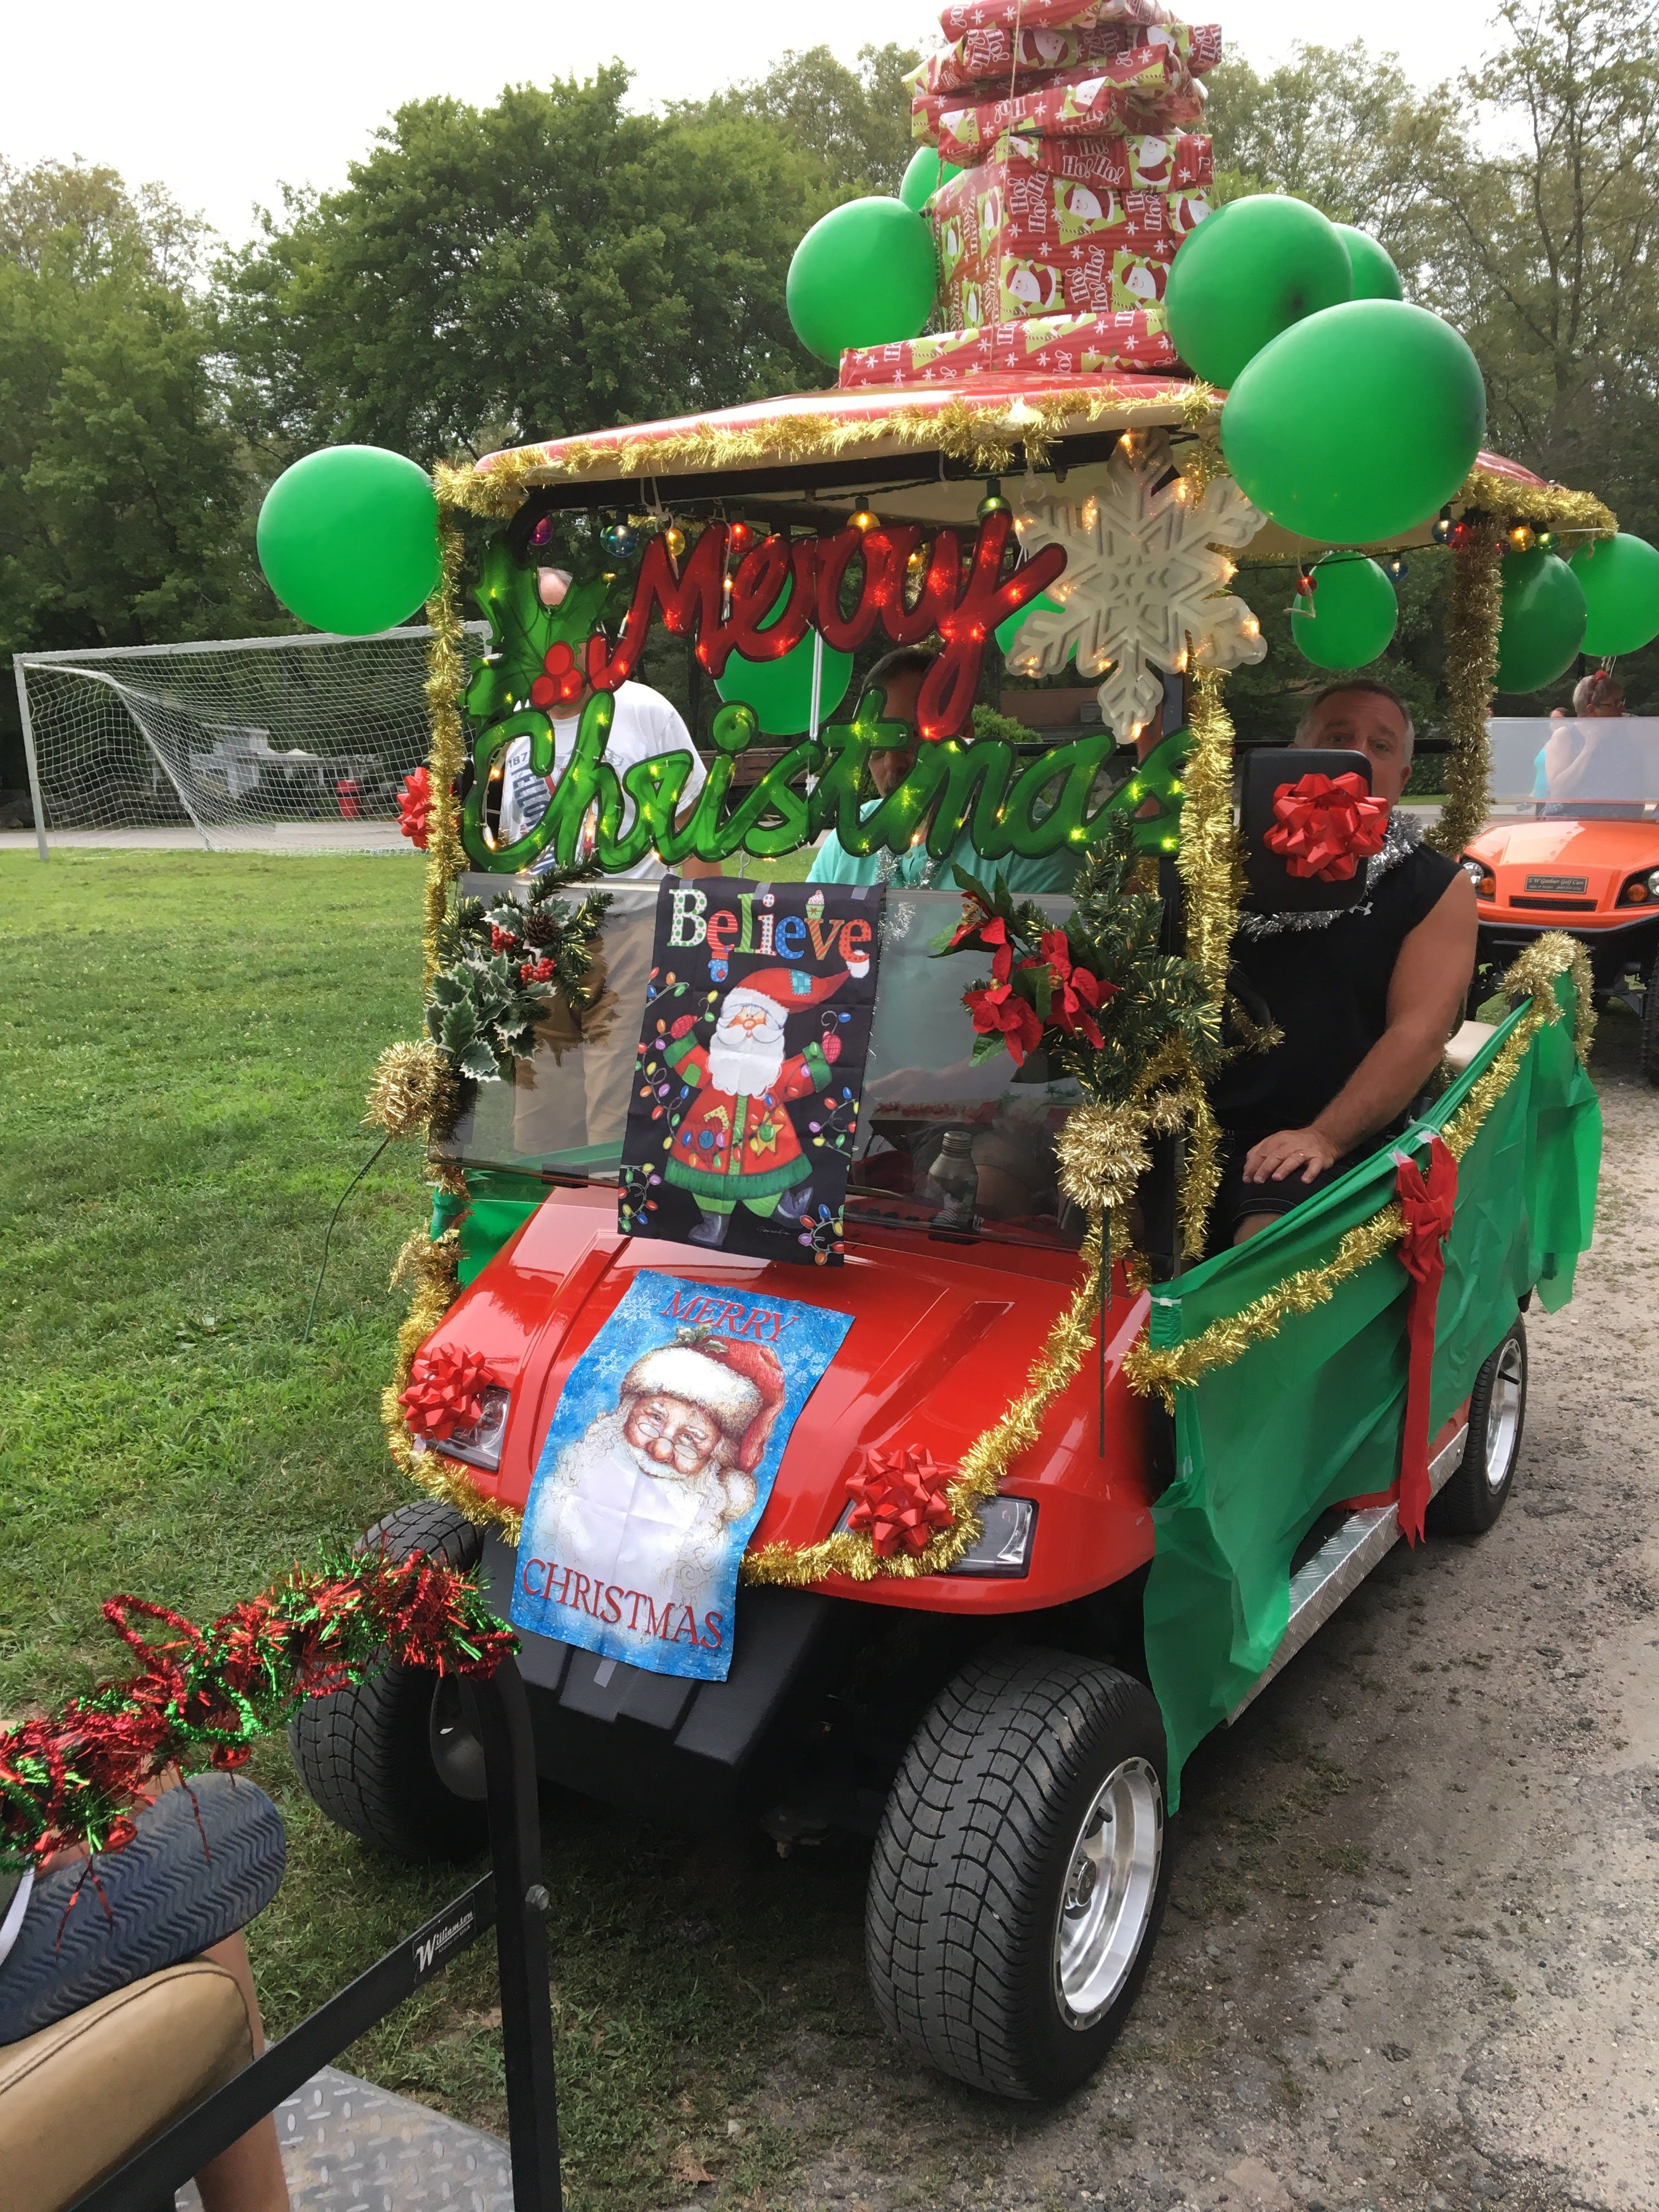 Pin By Alma Torres On Christmas Christmas Golf Christmas In July Golf Cart Decorations